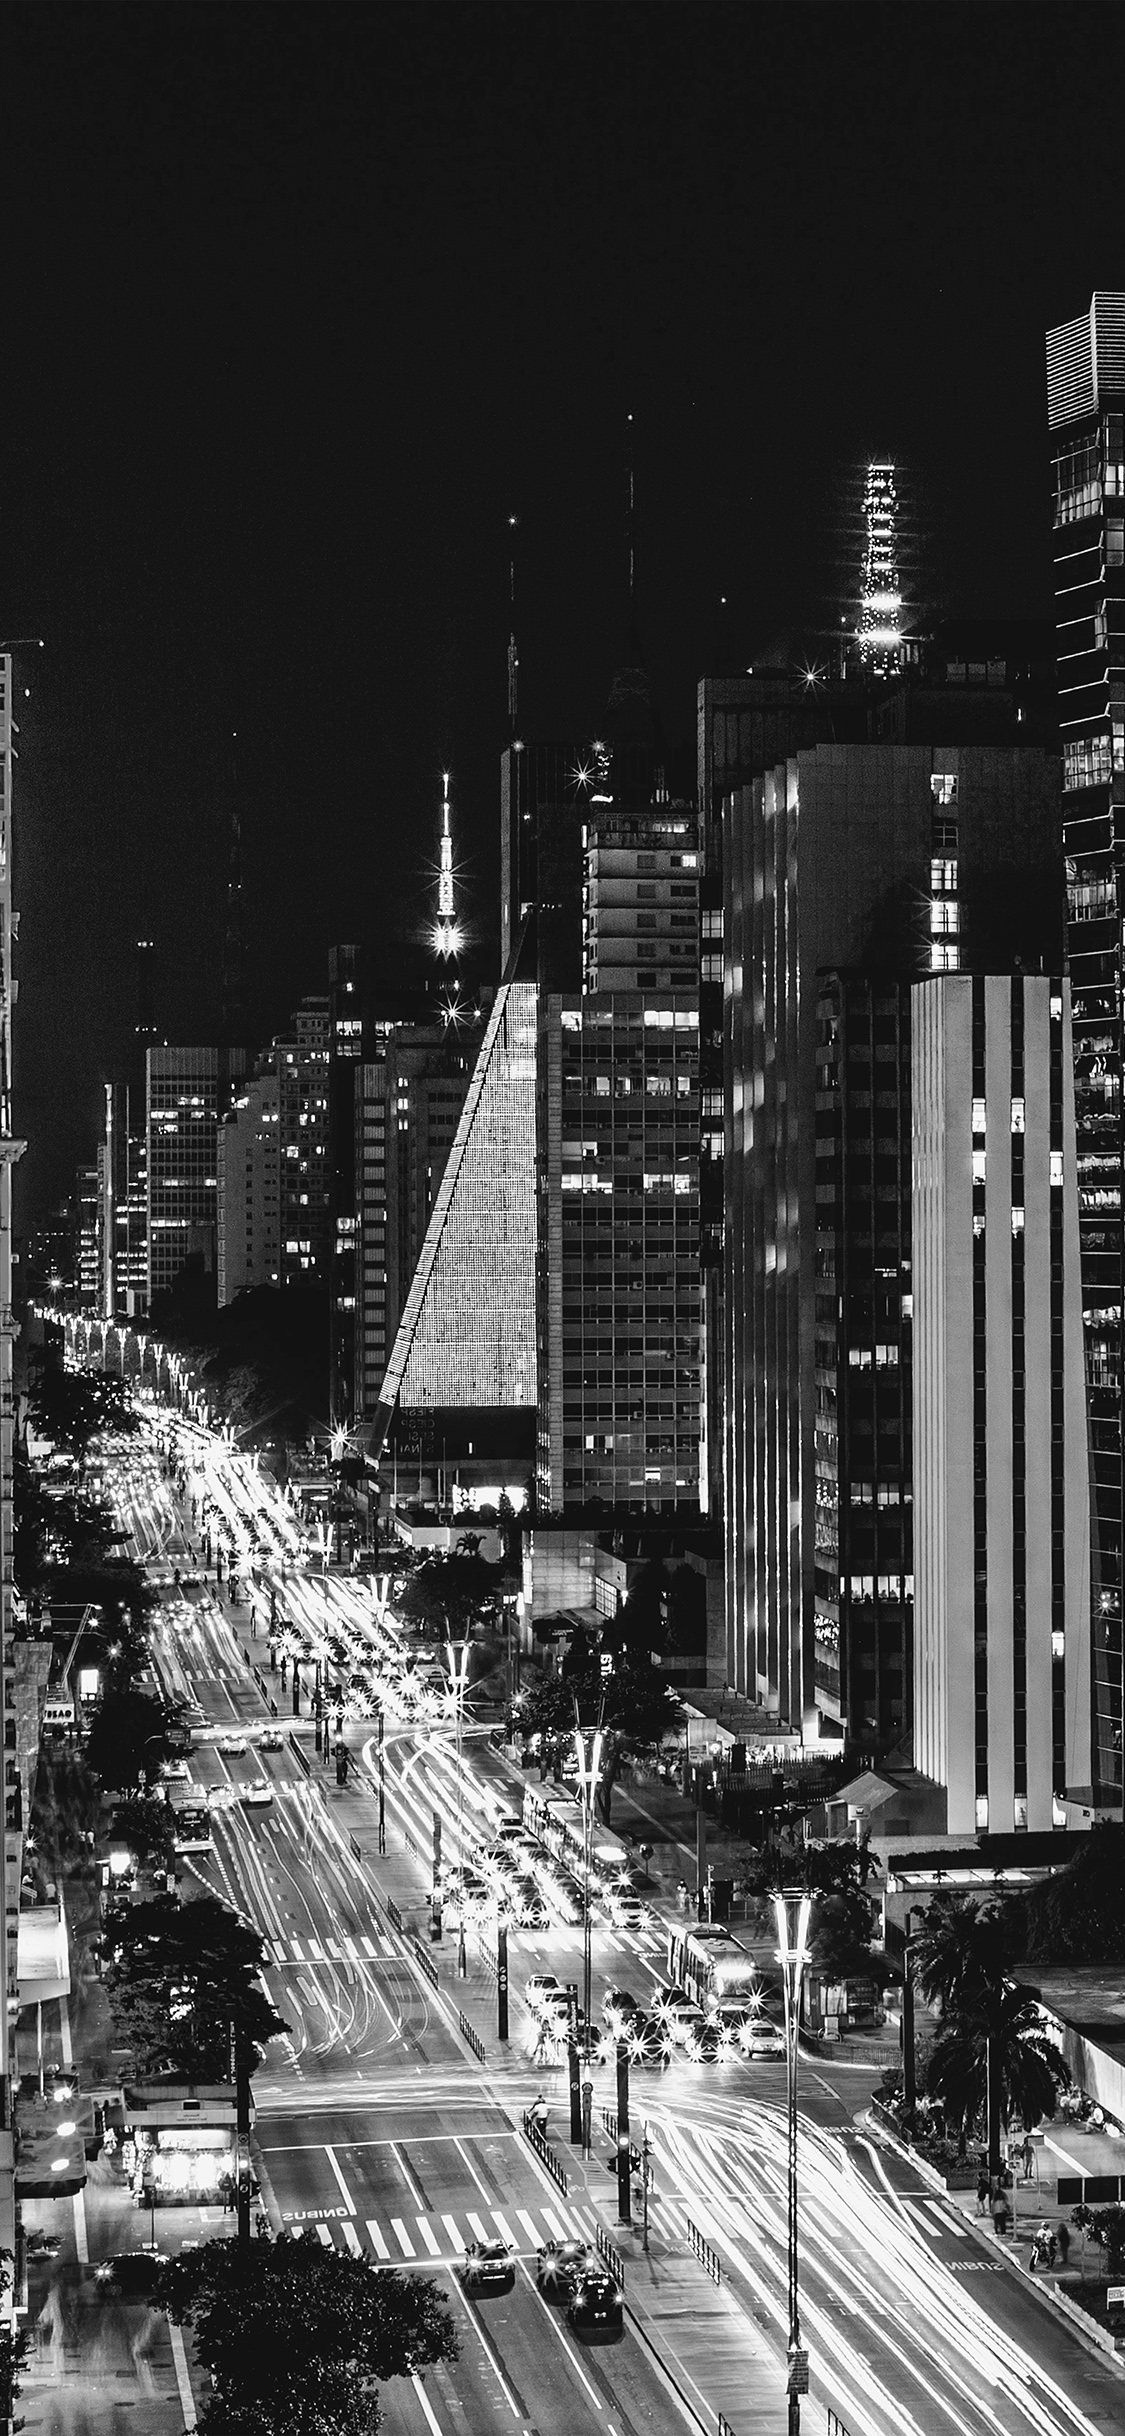 iPhoneXpapers.com-Apple-iPhone-wallpaper-nf07-city-night-view-urban-street-bw-dark